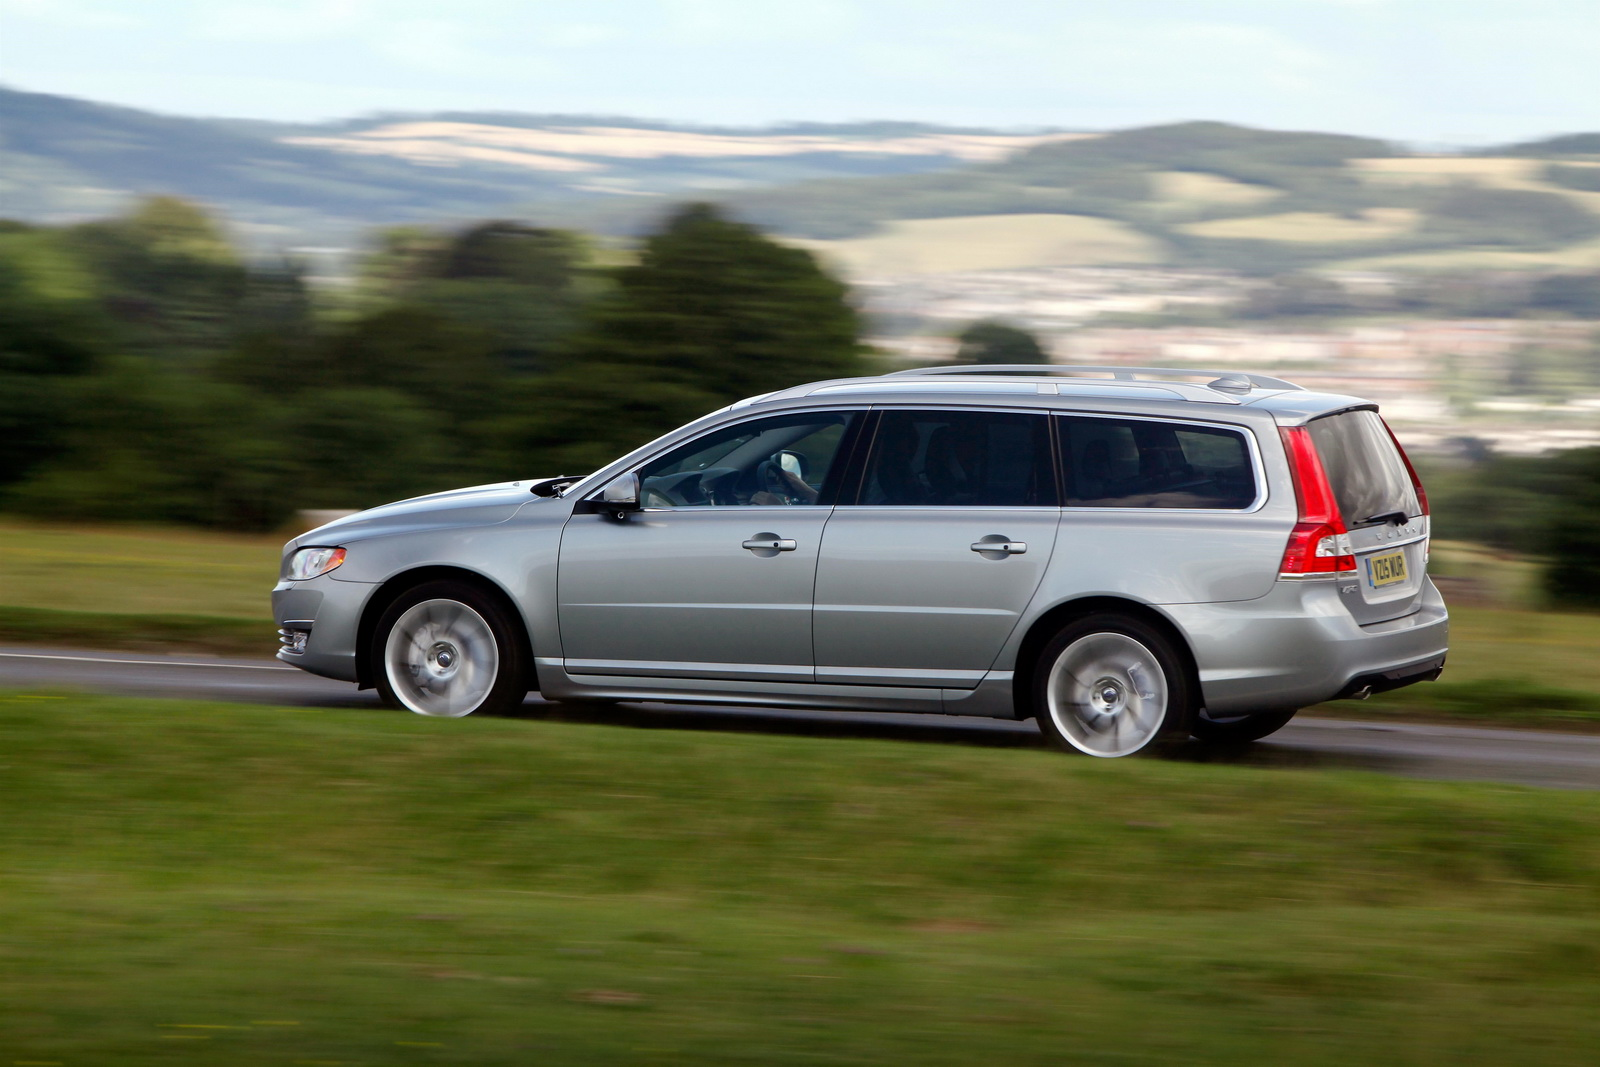 volvo updates my2016 model range with new drive e engines carscoops. Black Bedroom Furniture Sets. Home Design Ideas